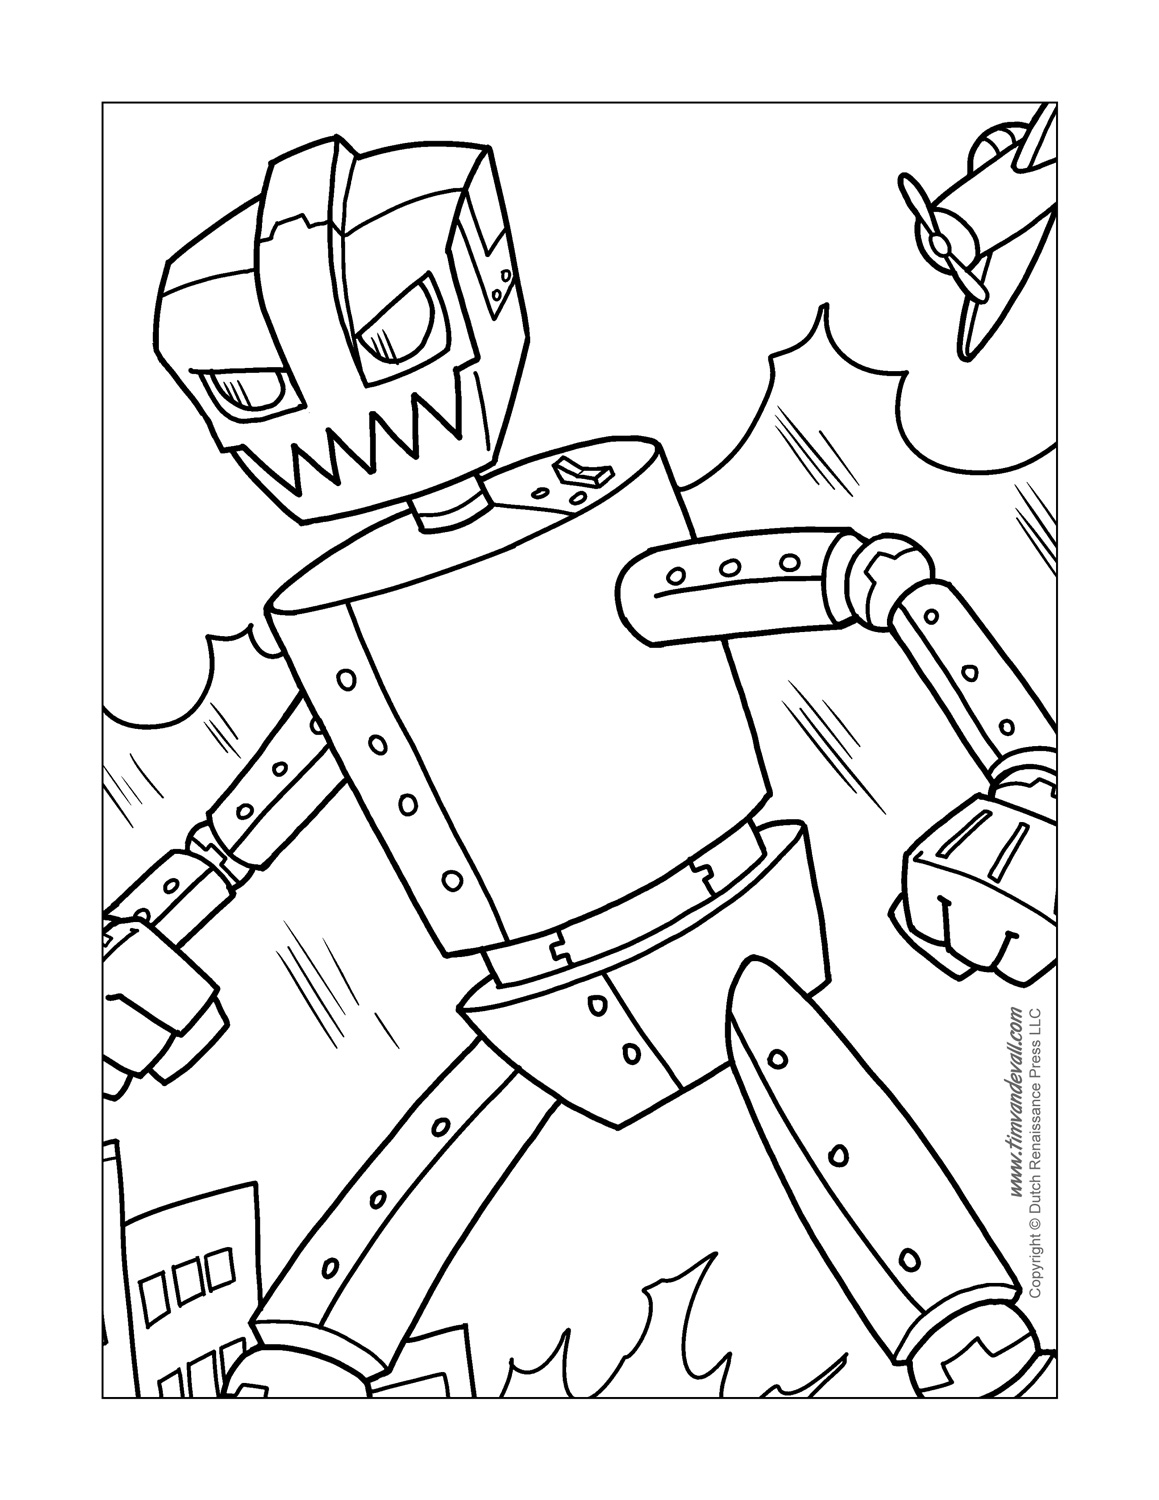 Free Printable Robot Coloring Pages At Getdrawings Com Free For